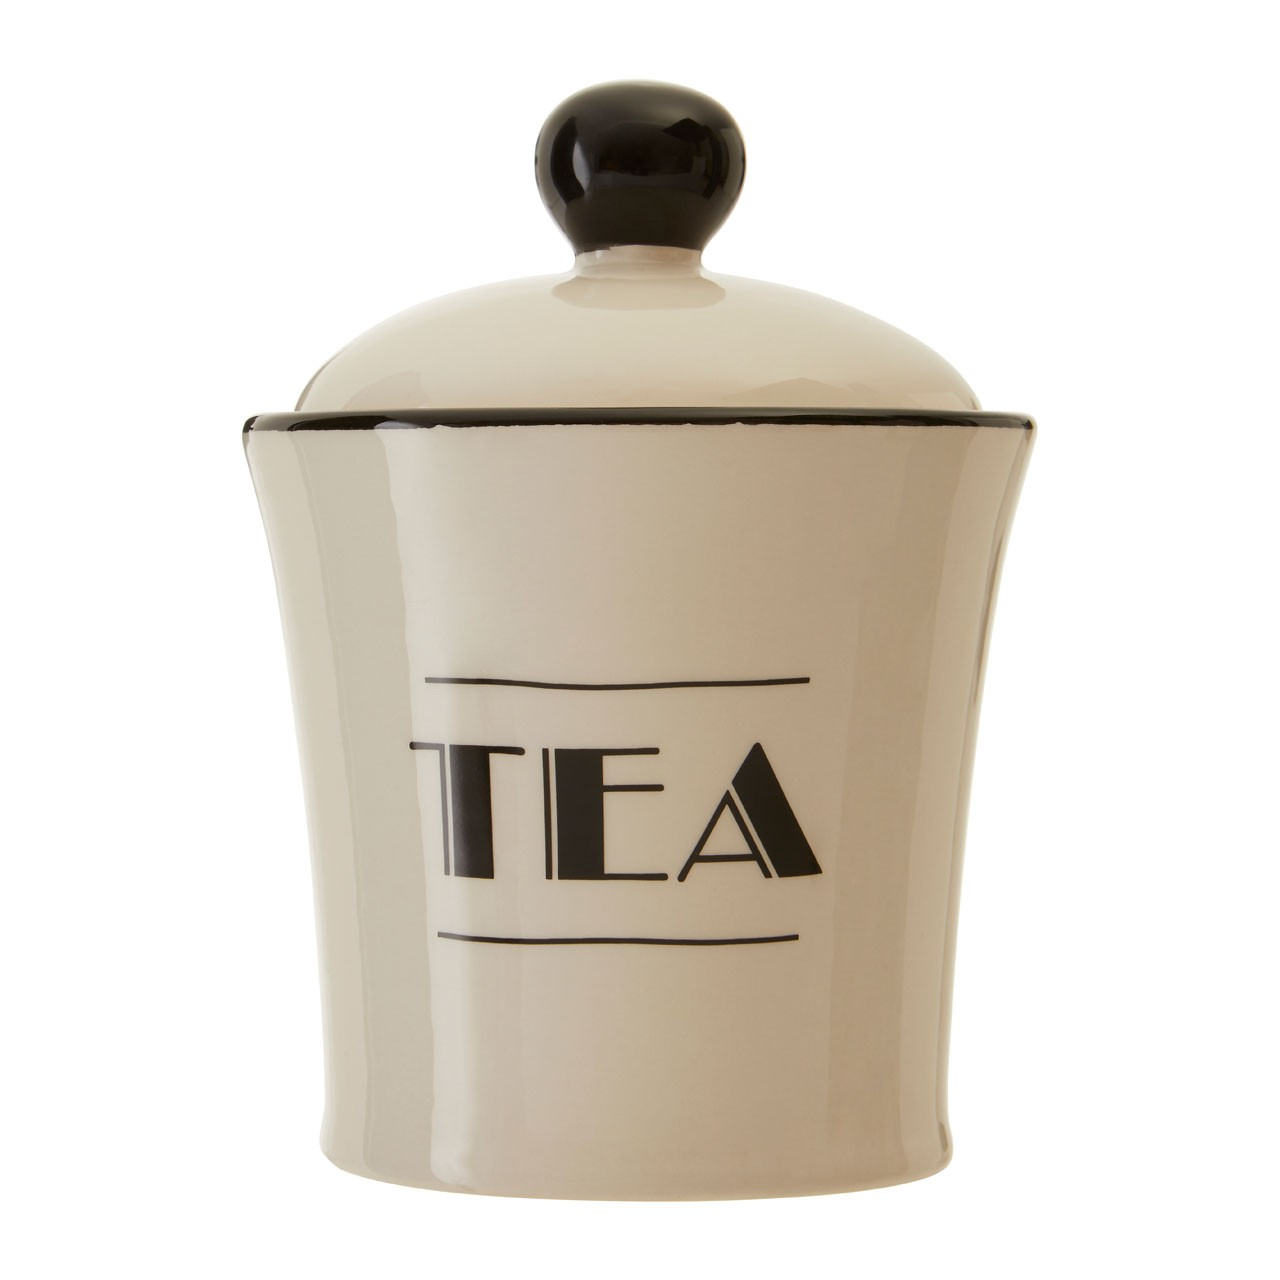 Broadway Tea Canister For Home Kitchen